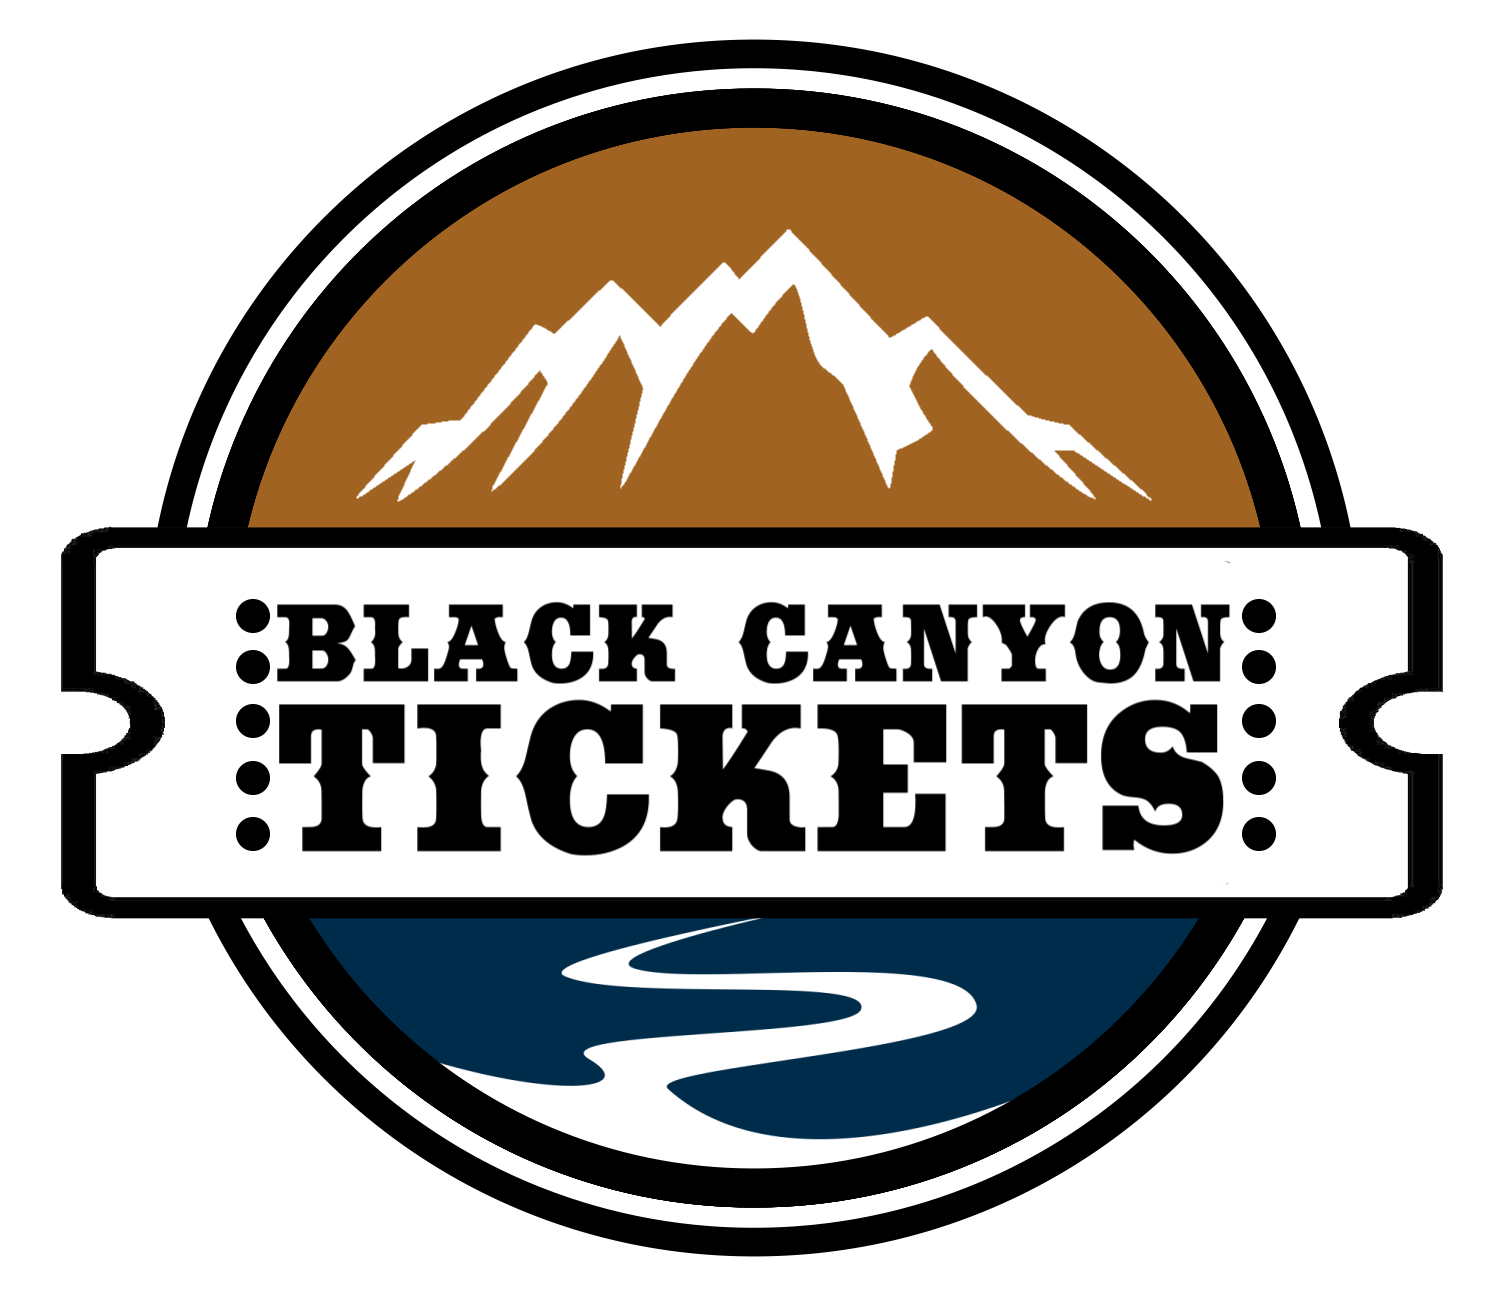 Countdown - Black Canyon Tickets